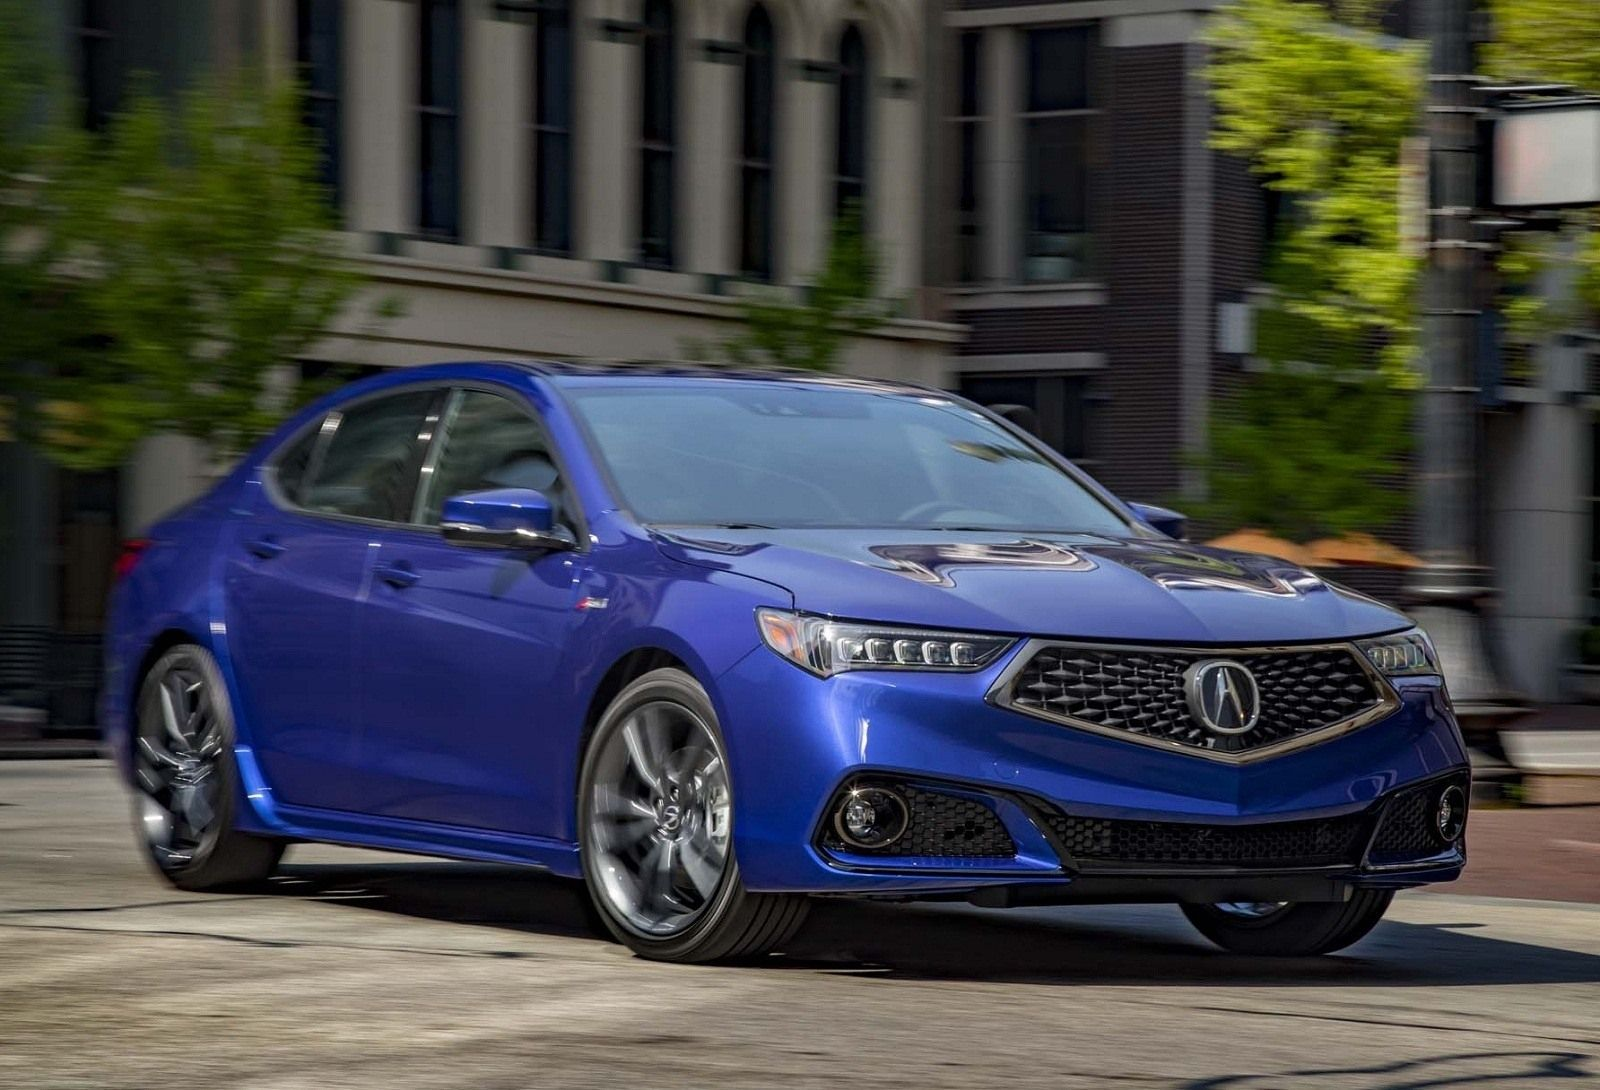 2019 Ilx Specs Price Car Review 2018 Acura Tlx Acura Rsx Acura Ilx